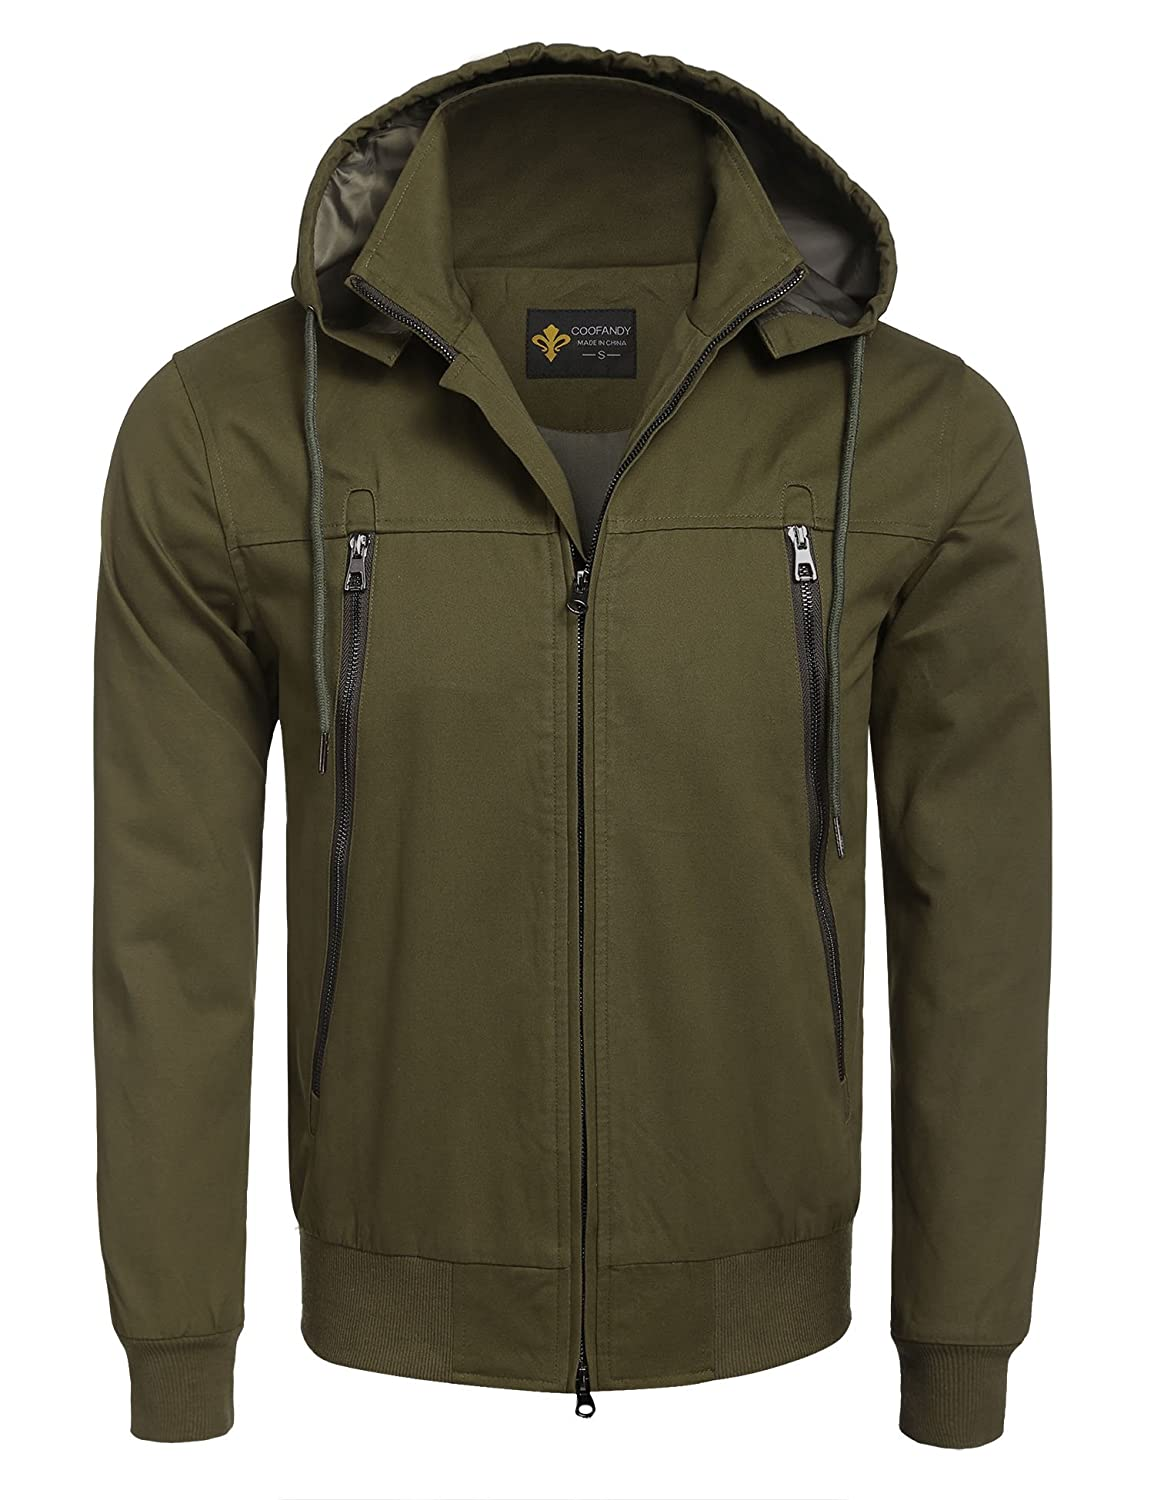 COOFANDY Mens Casual Slim Fit Heavyweight Insulated Zip-up Detachable Hoodies Unisex Jacket Outerwear